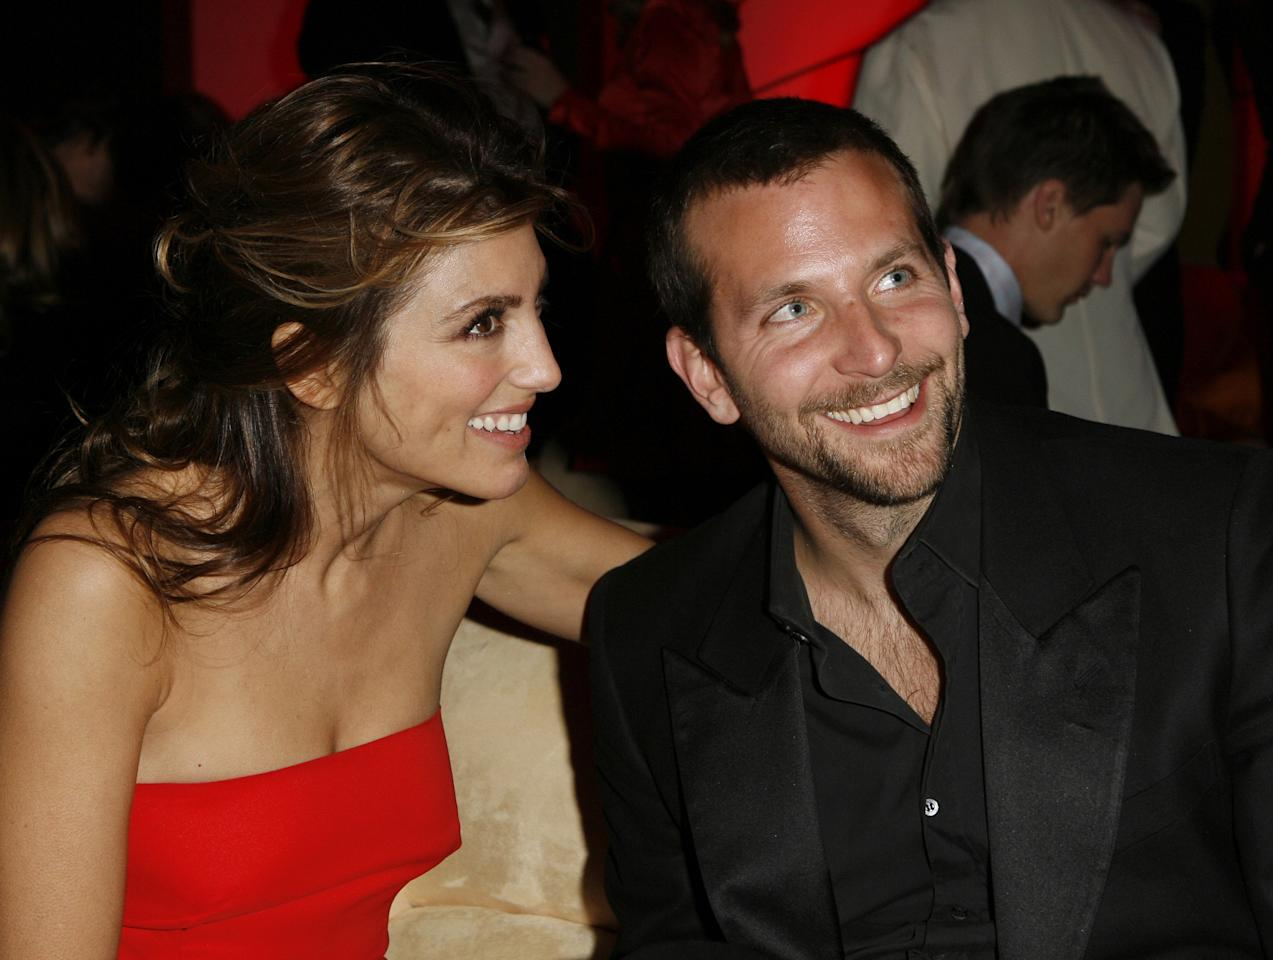 Before he was Jackson Maine, Cooper was Mr. Jennifer Esposito—for four months, anyway. The couple got married in December 2006 before the actress filed for divorce in May 2007.